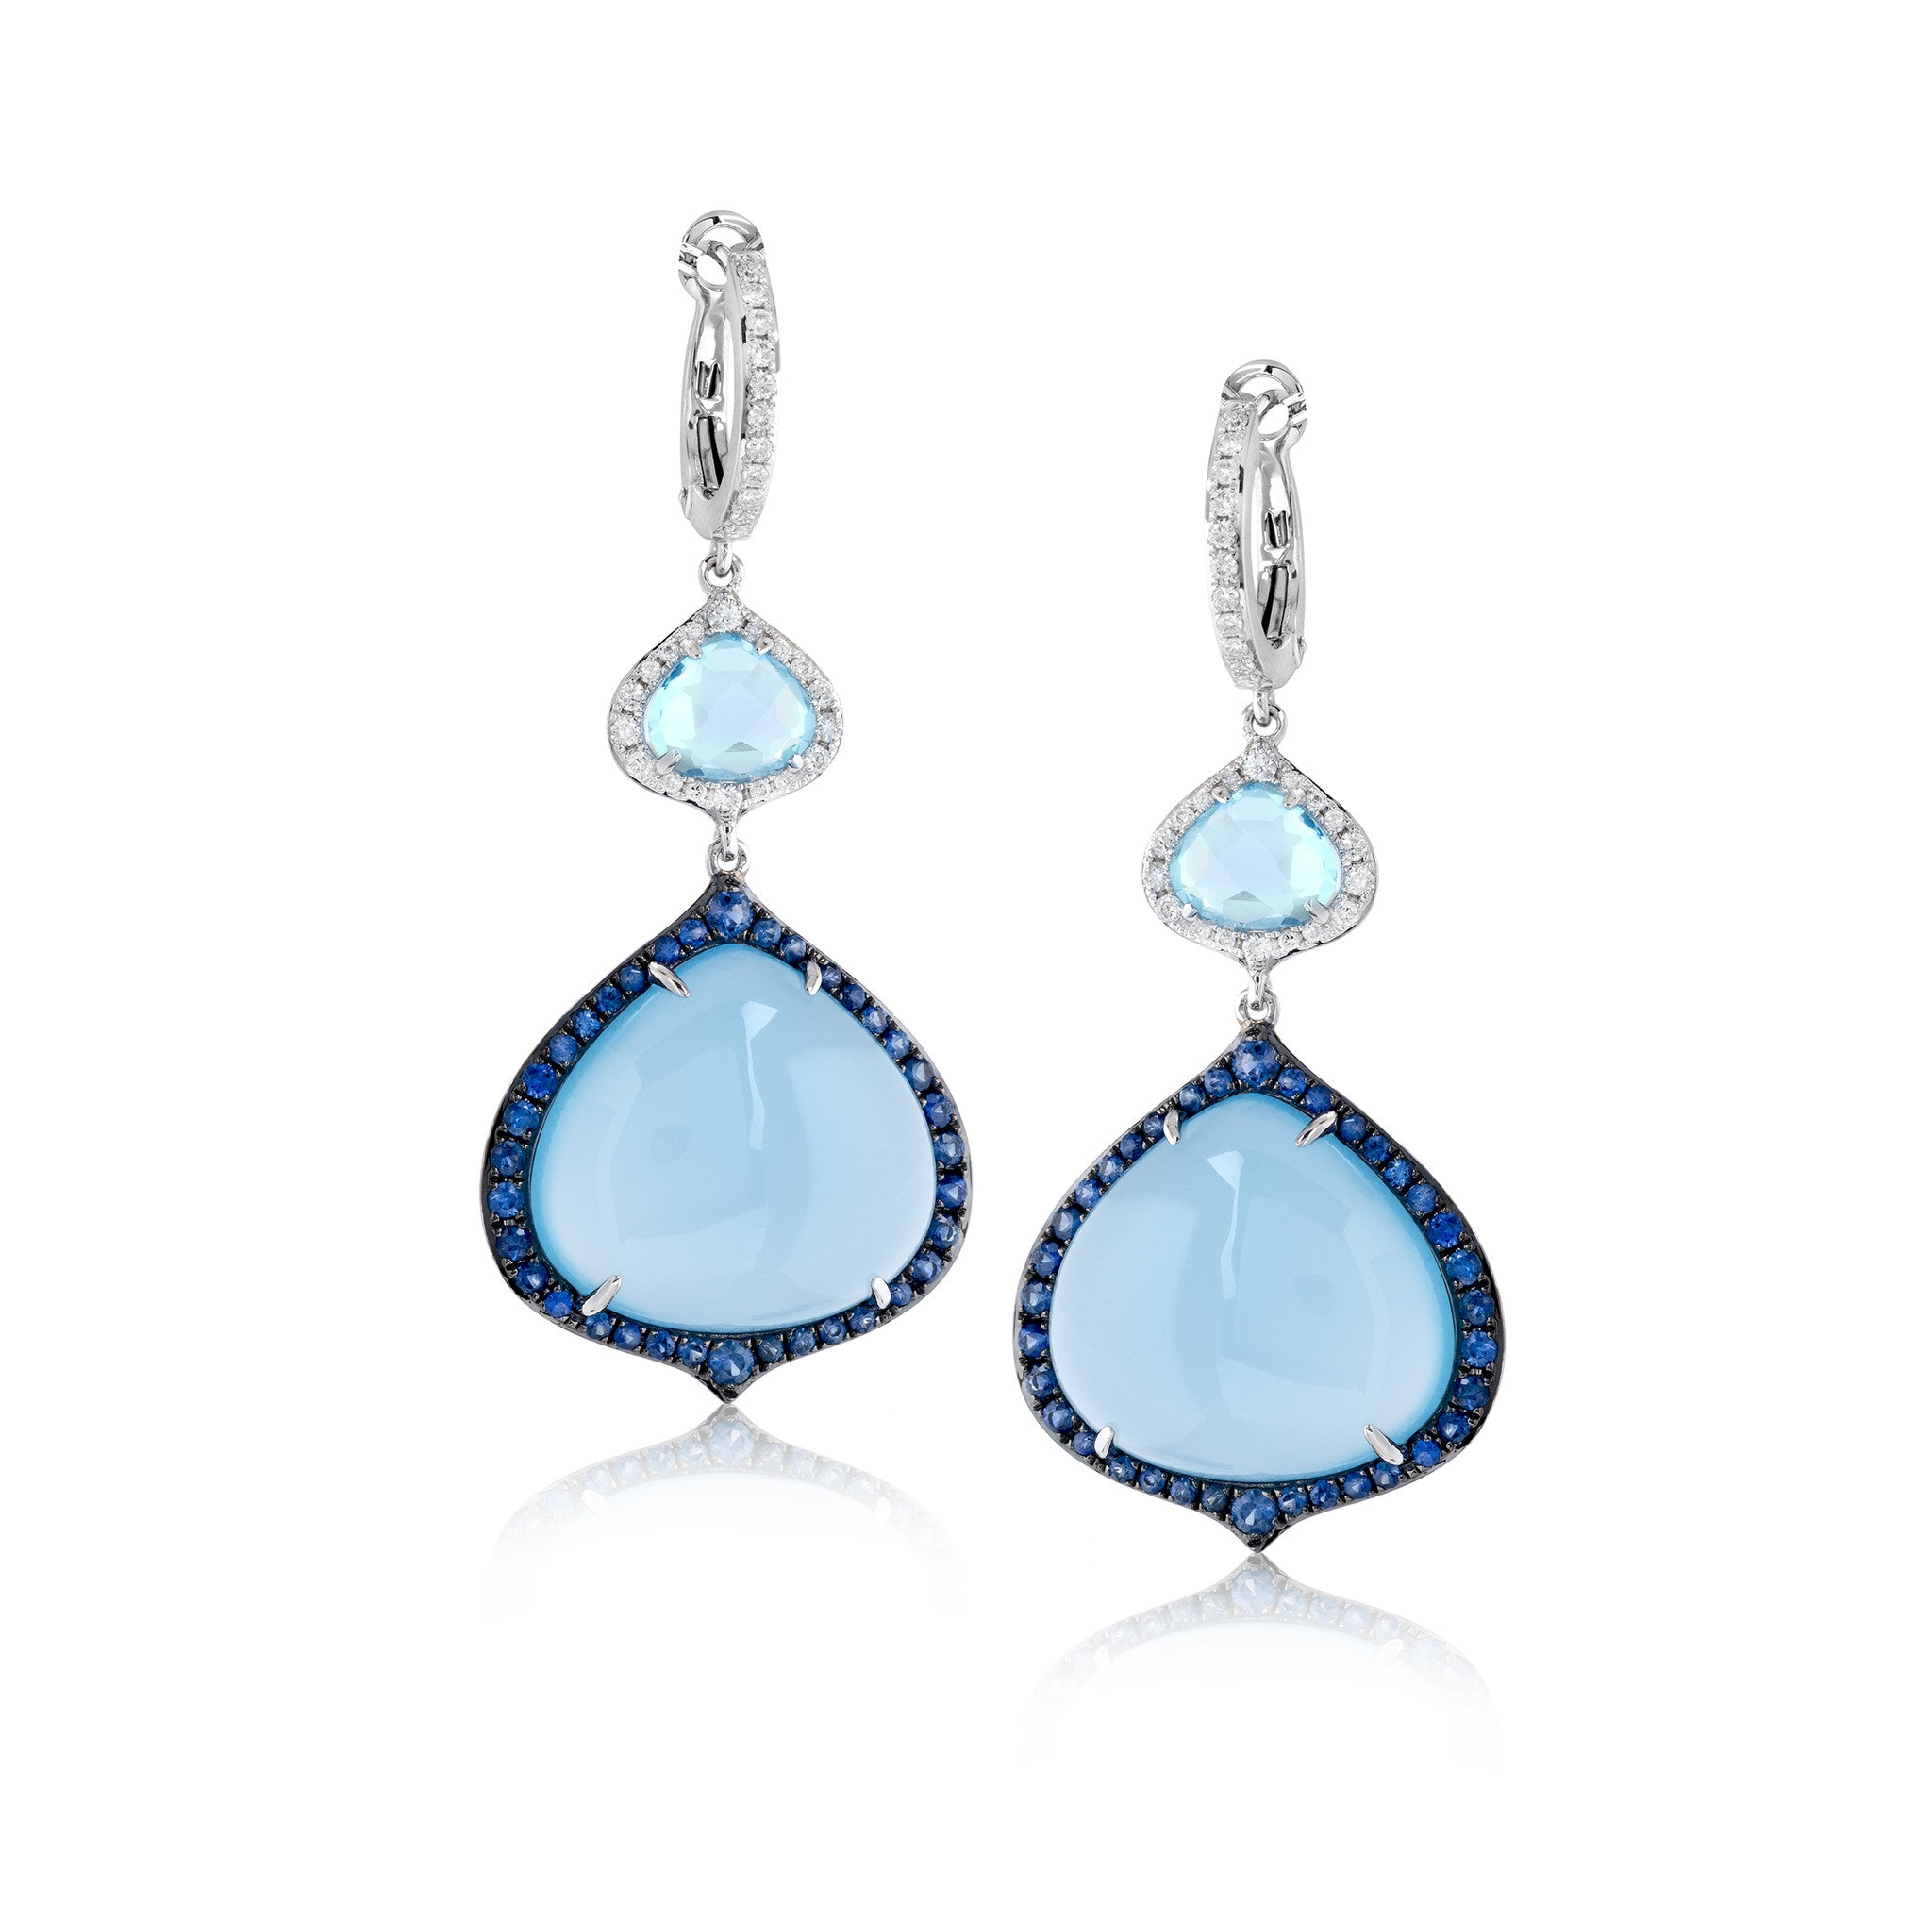 Zeghani Blue Chalcedony, Diamonds, and Sapphires 14k White Gold Earrings